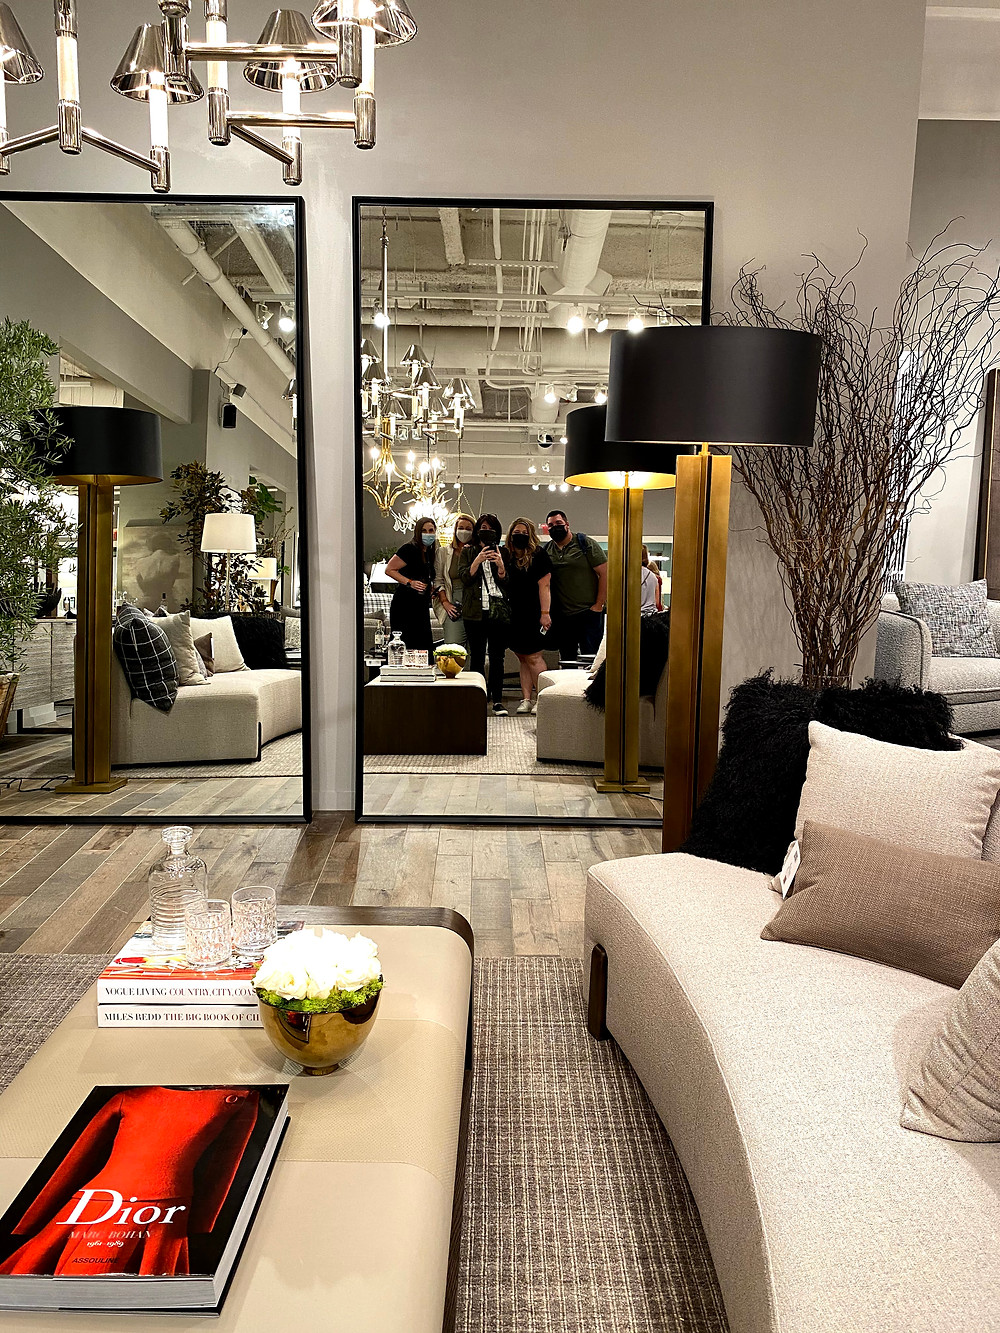 Nancy Lane Interiors: An Introvert's Guide to High Point Market